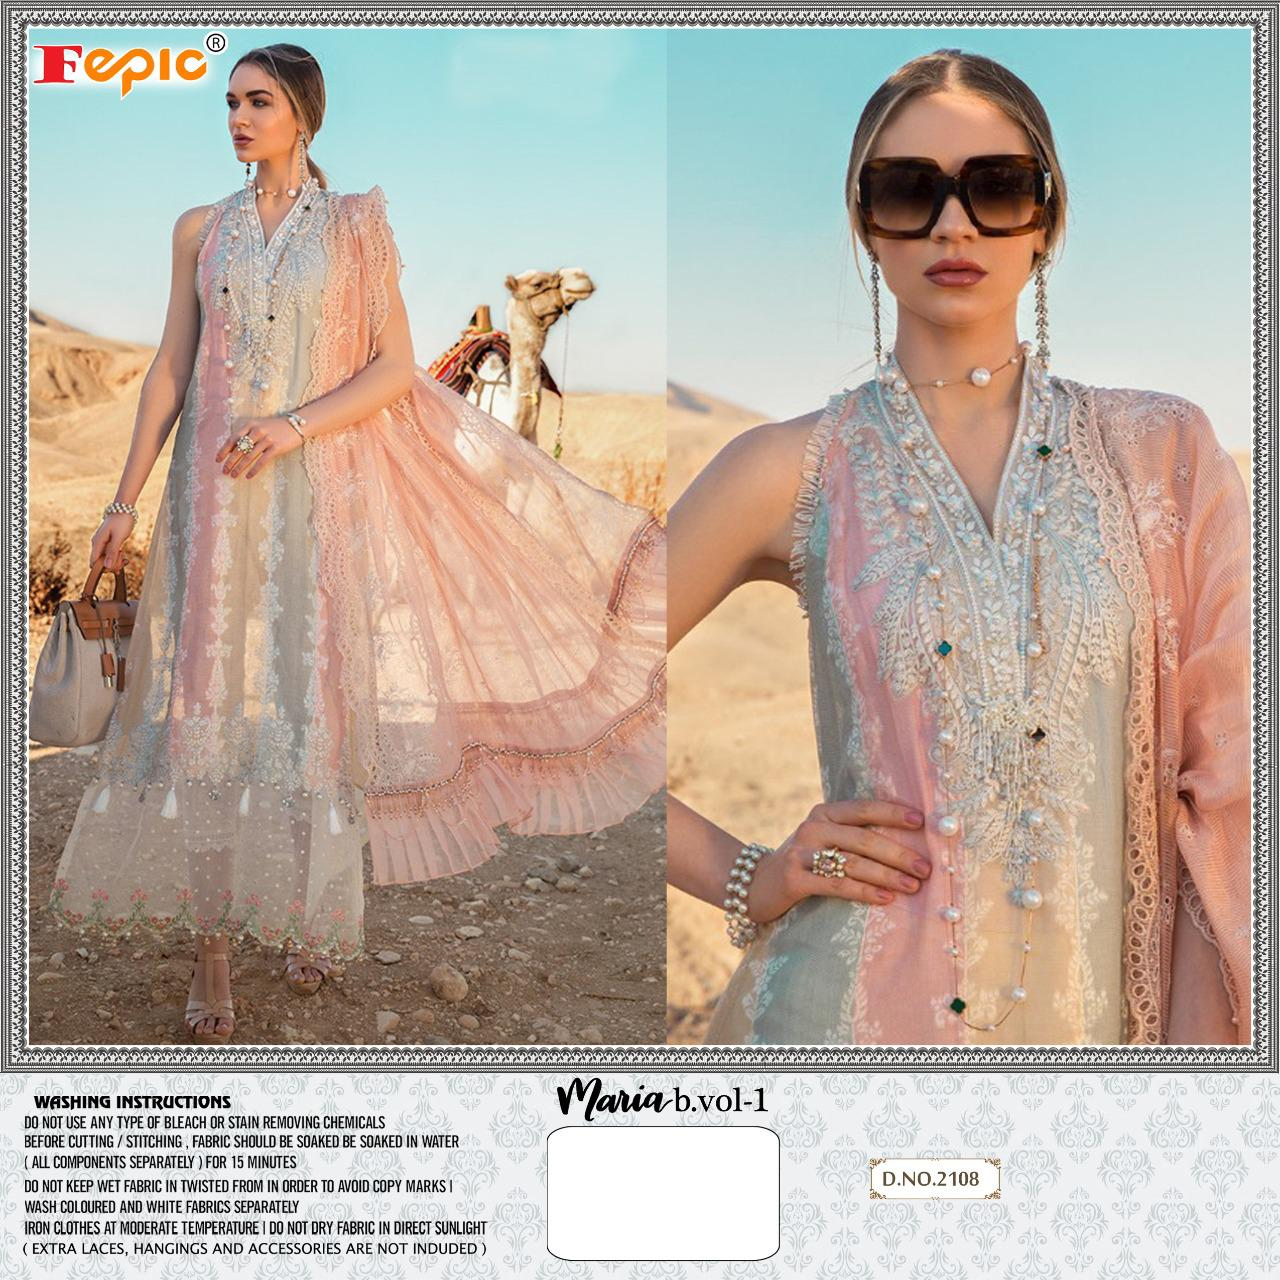 Fepic Rosemeen Maria B Vol 1 Printed Pure Cotton With Patch Embroidery Work Pakistani Dress Material At Wholesale Rate